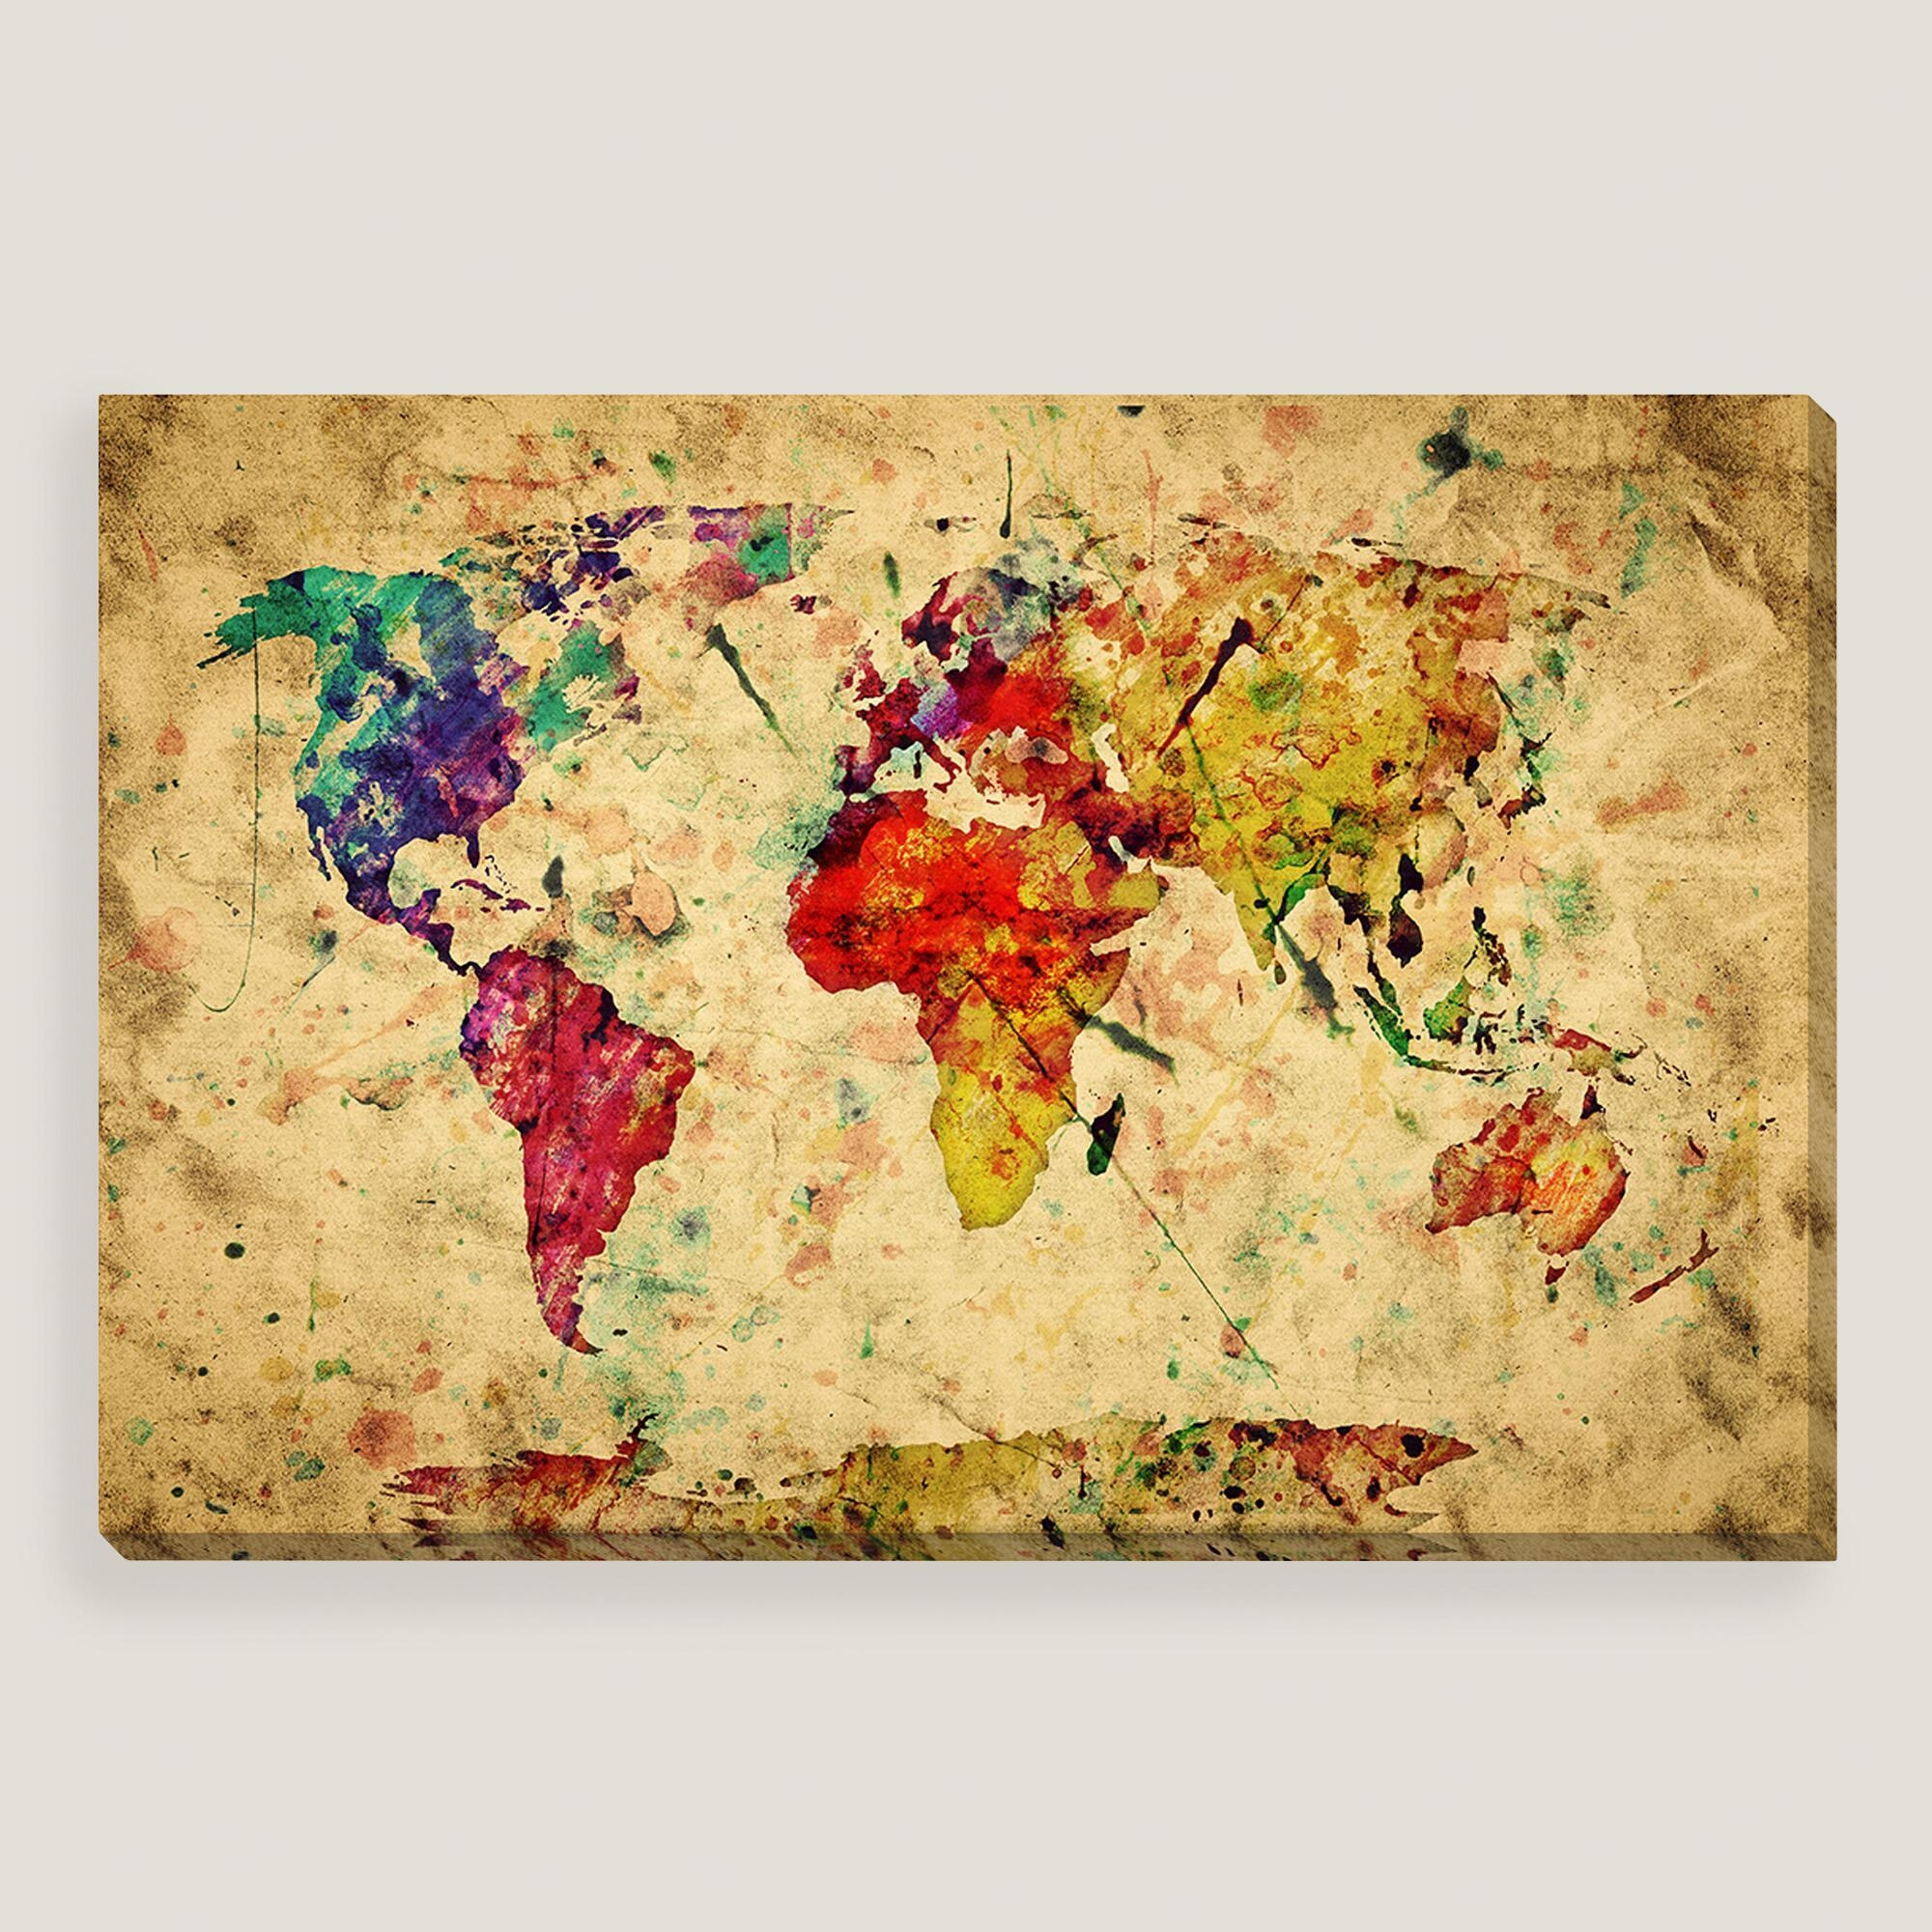 Wall Art Design Ideas: Wooden Dimensions Vintage World Map Wall Intended For Antique Map Wall Art (View 8 of 20)